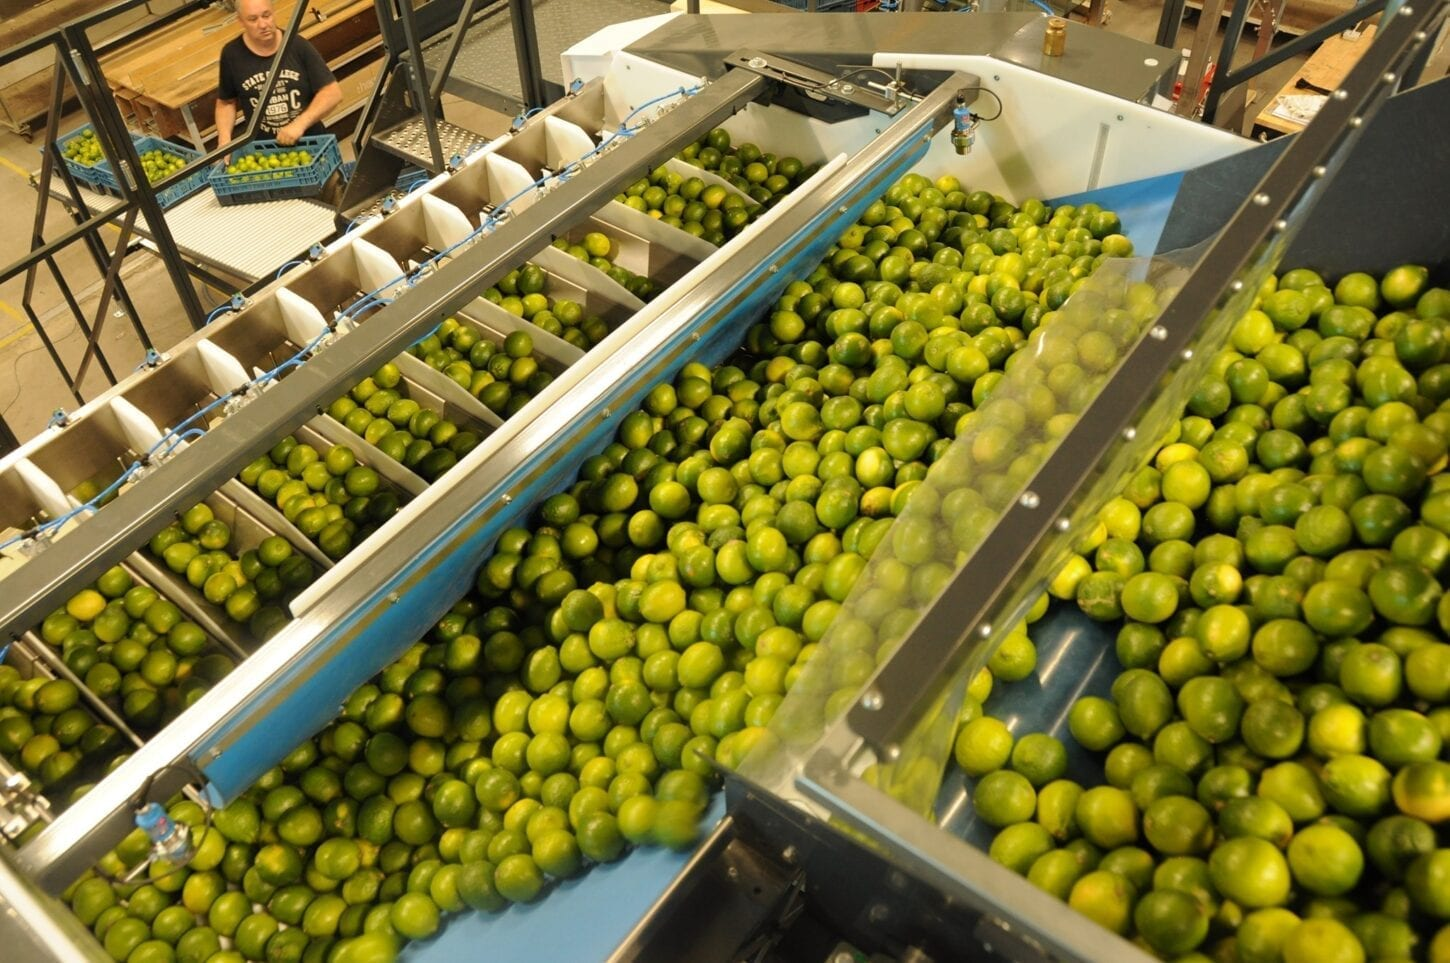 Choosing the right packaging equipment for your processing line